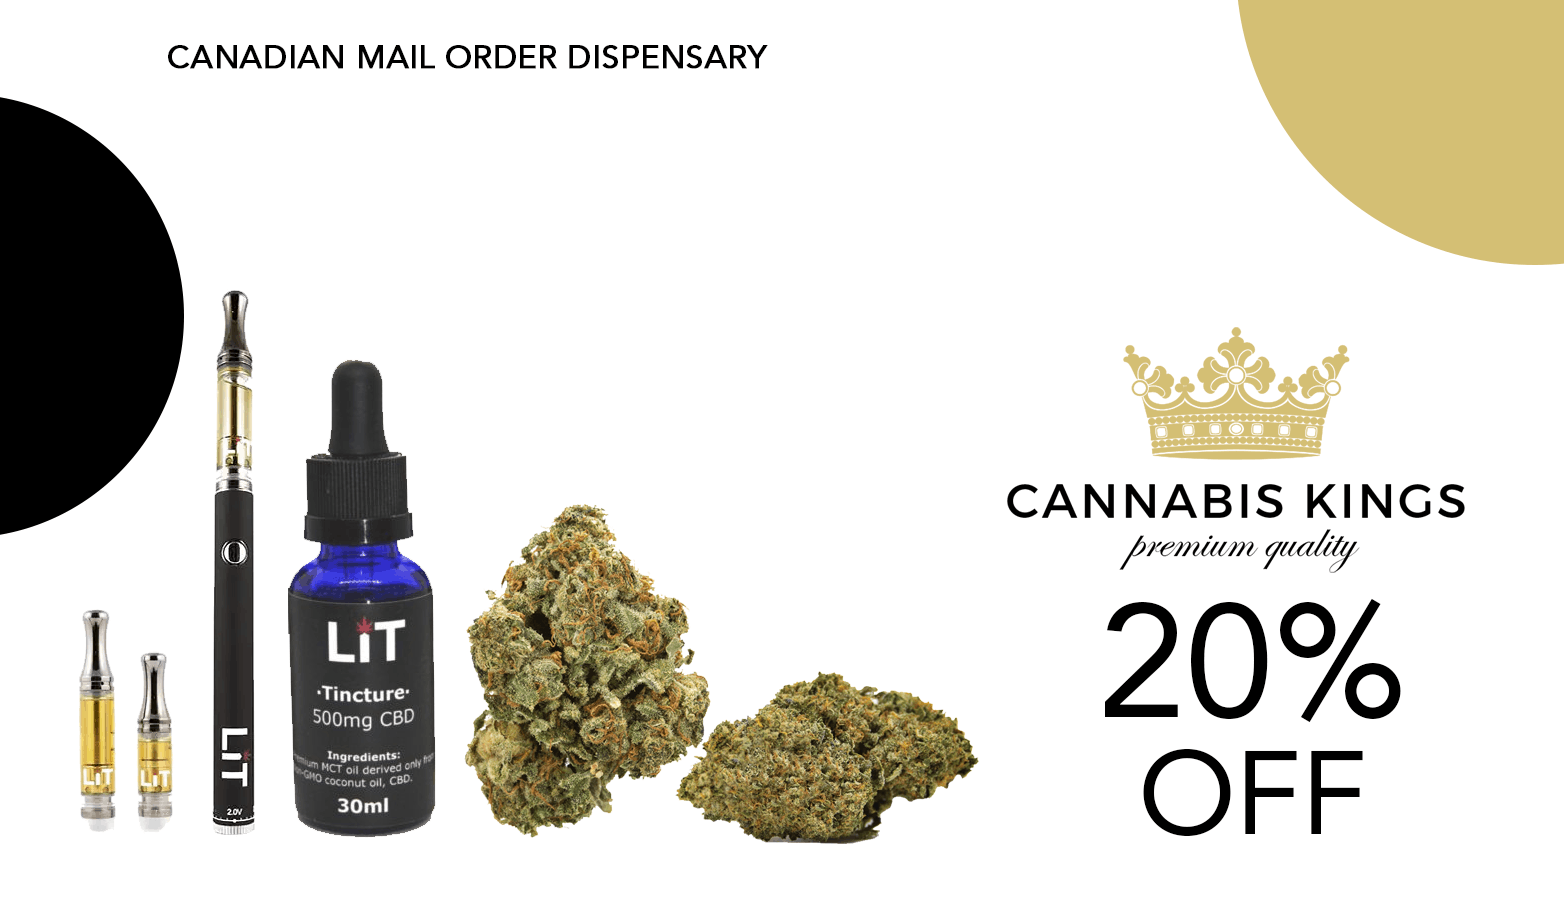 Cannabis Kings Coupon Code 20 Percent Offer Website